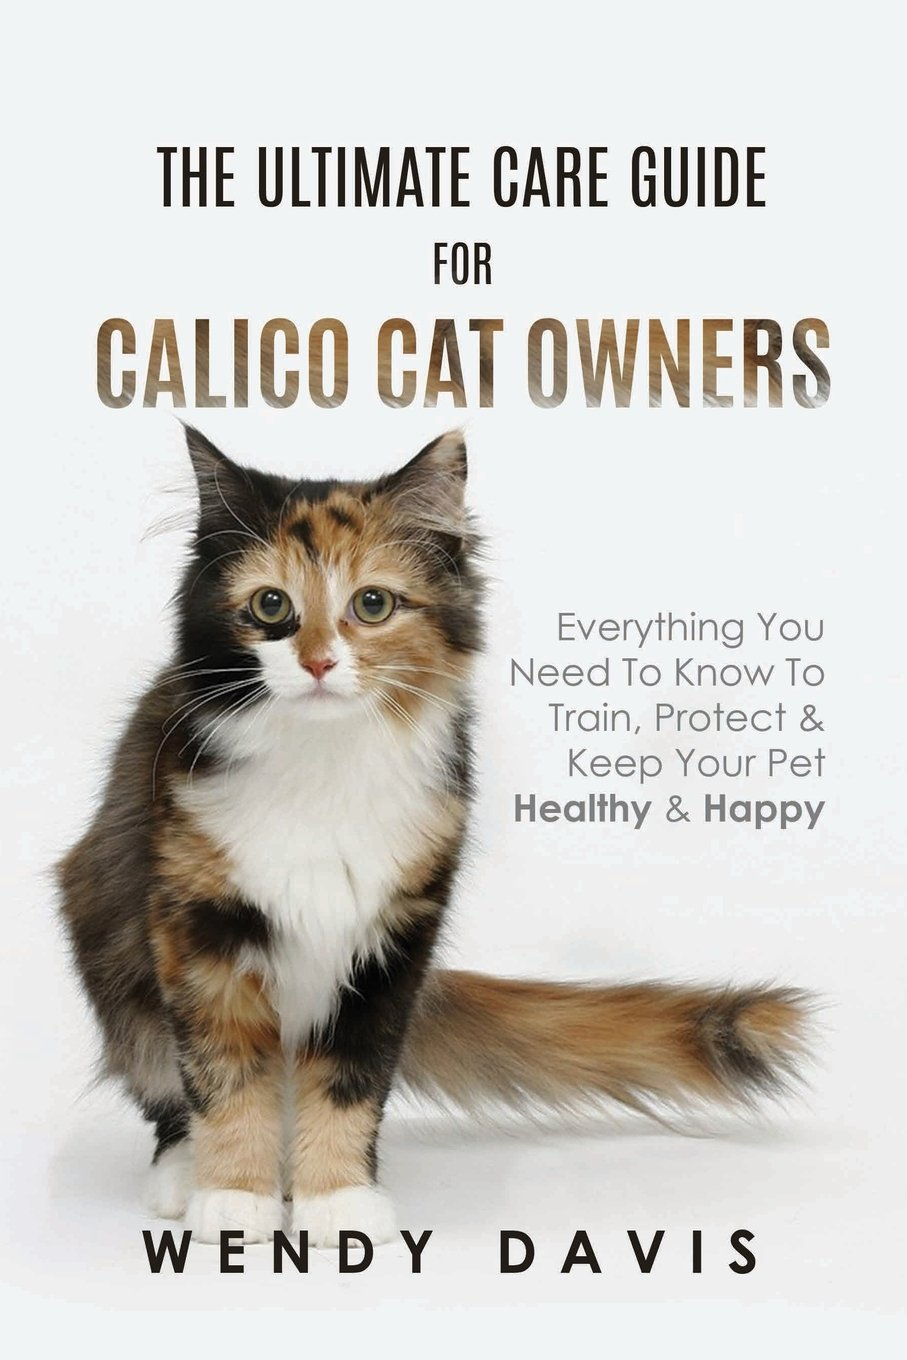 The Ultimate Care Guide for Calico Cat Owners: Everything You Need to Know to Train, Protect & Keep Your Pet Healthy & Happy